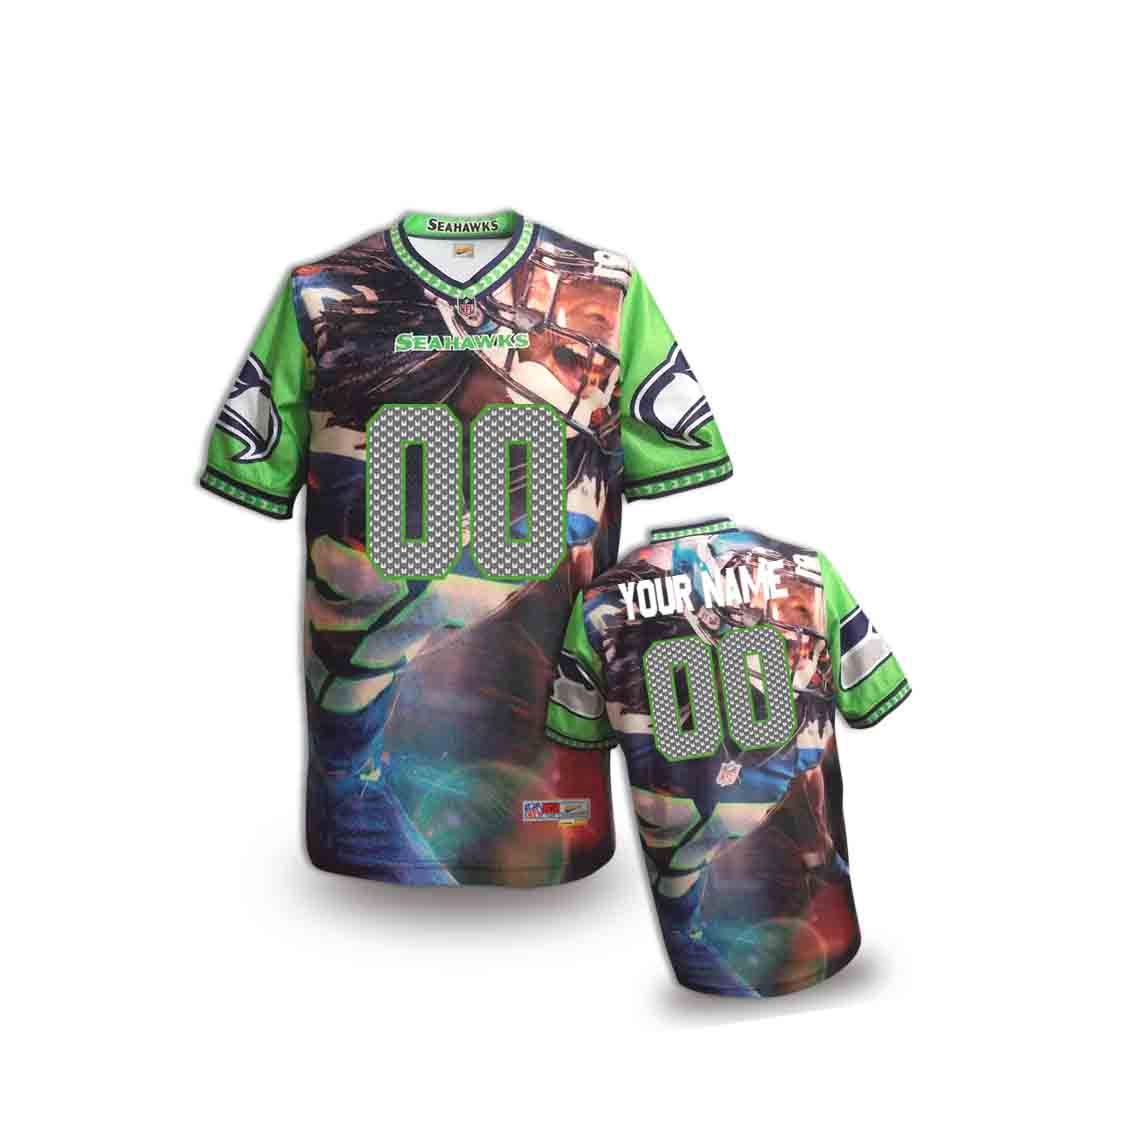 Nike Seahawks Customized Fashion Stitched Youth Jerseys16